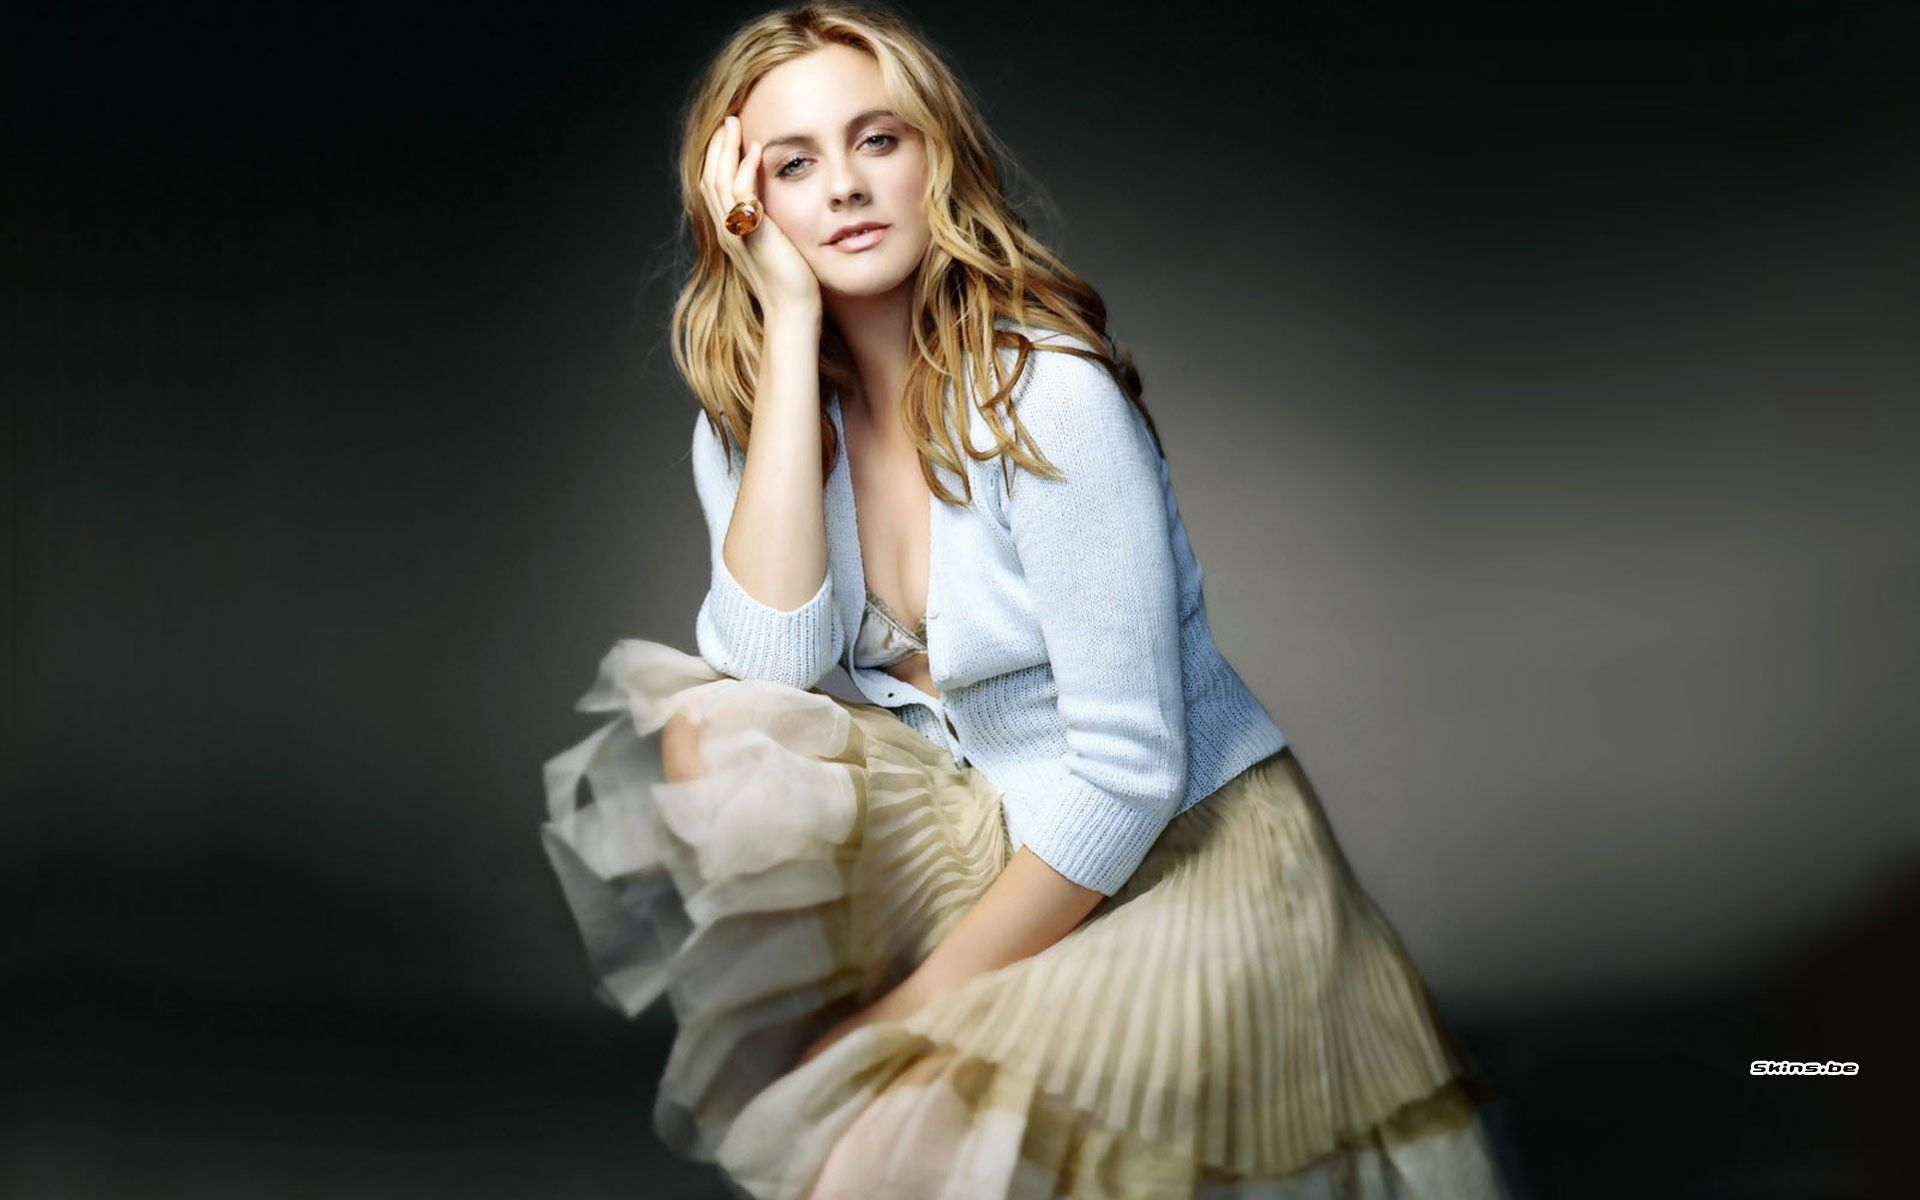 alicia silverstone : Wallpapers Collection 1920x1200